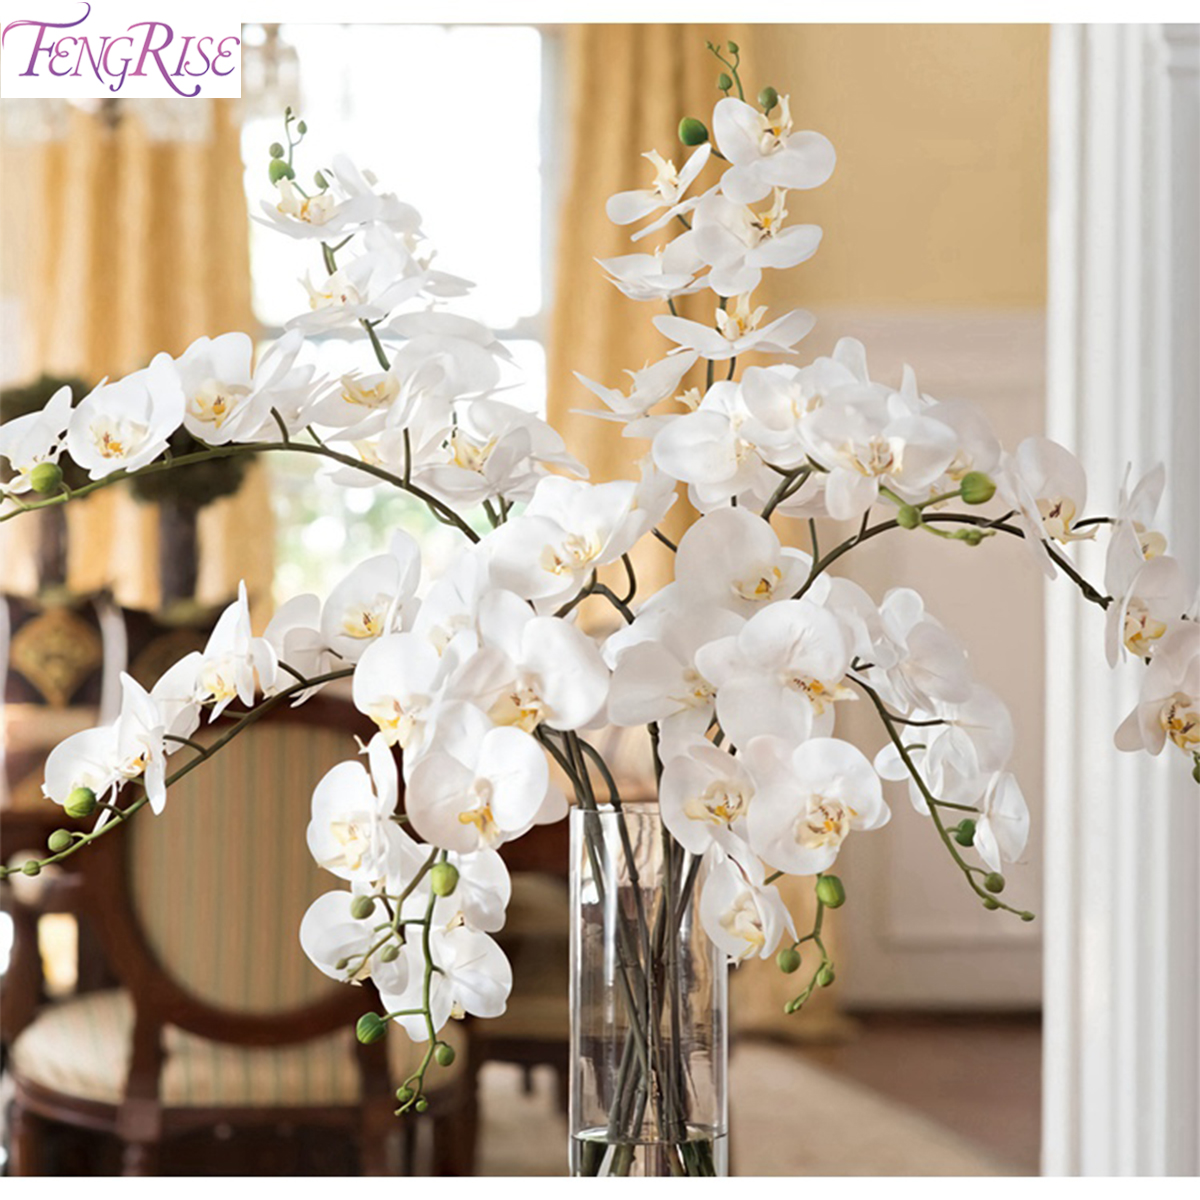 Fengrise White Phalaenopsis Orchid Artificial Orchid Flower For